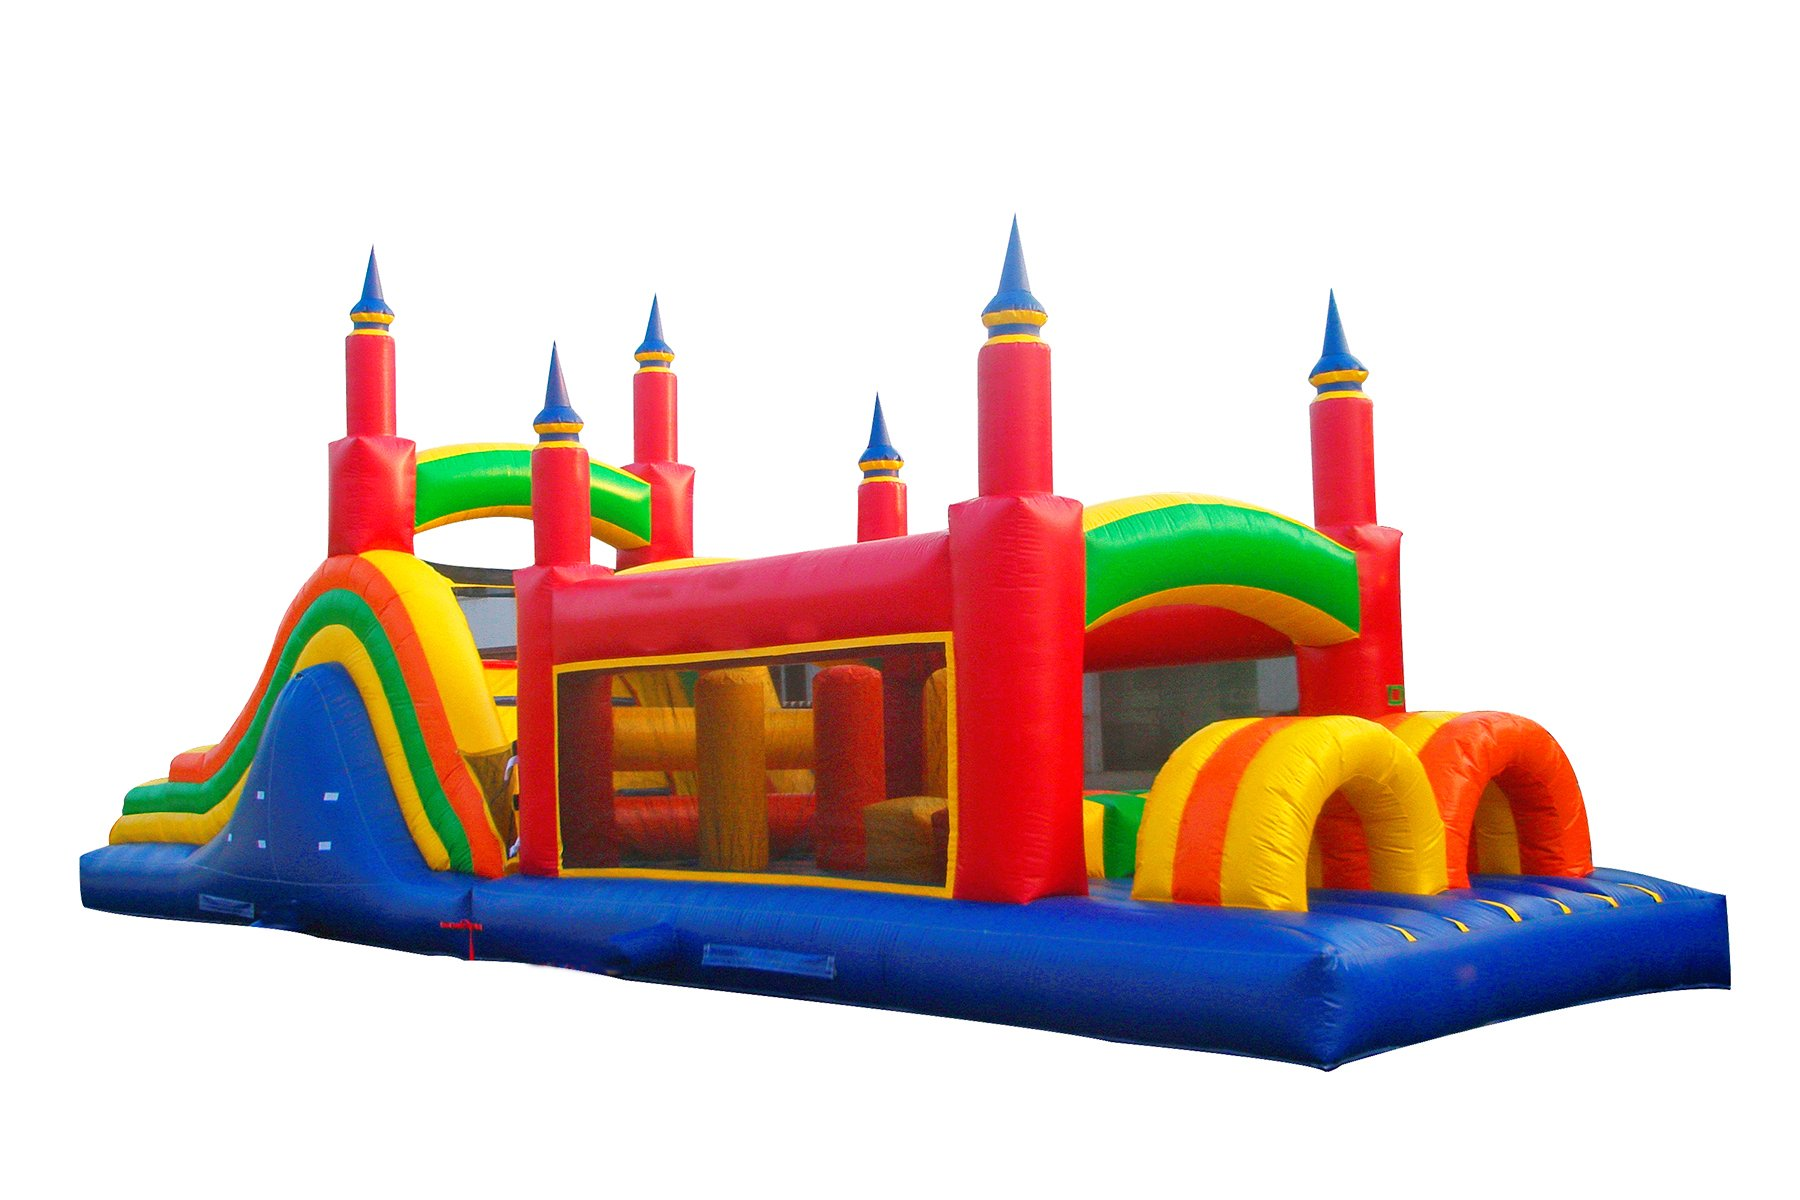 40 Foot Obstacle Course